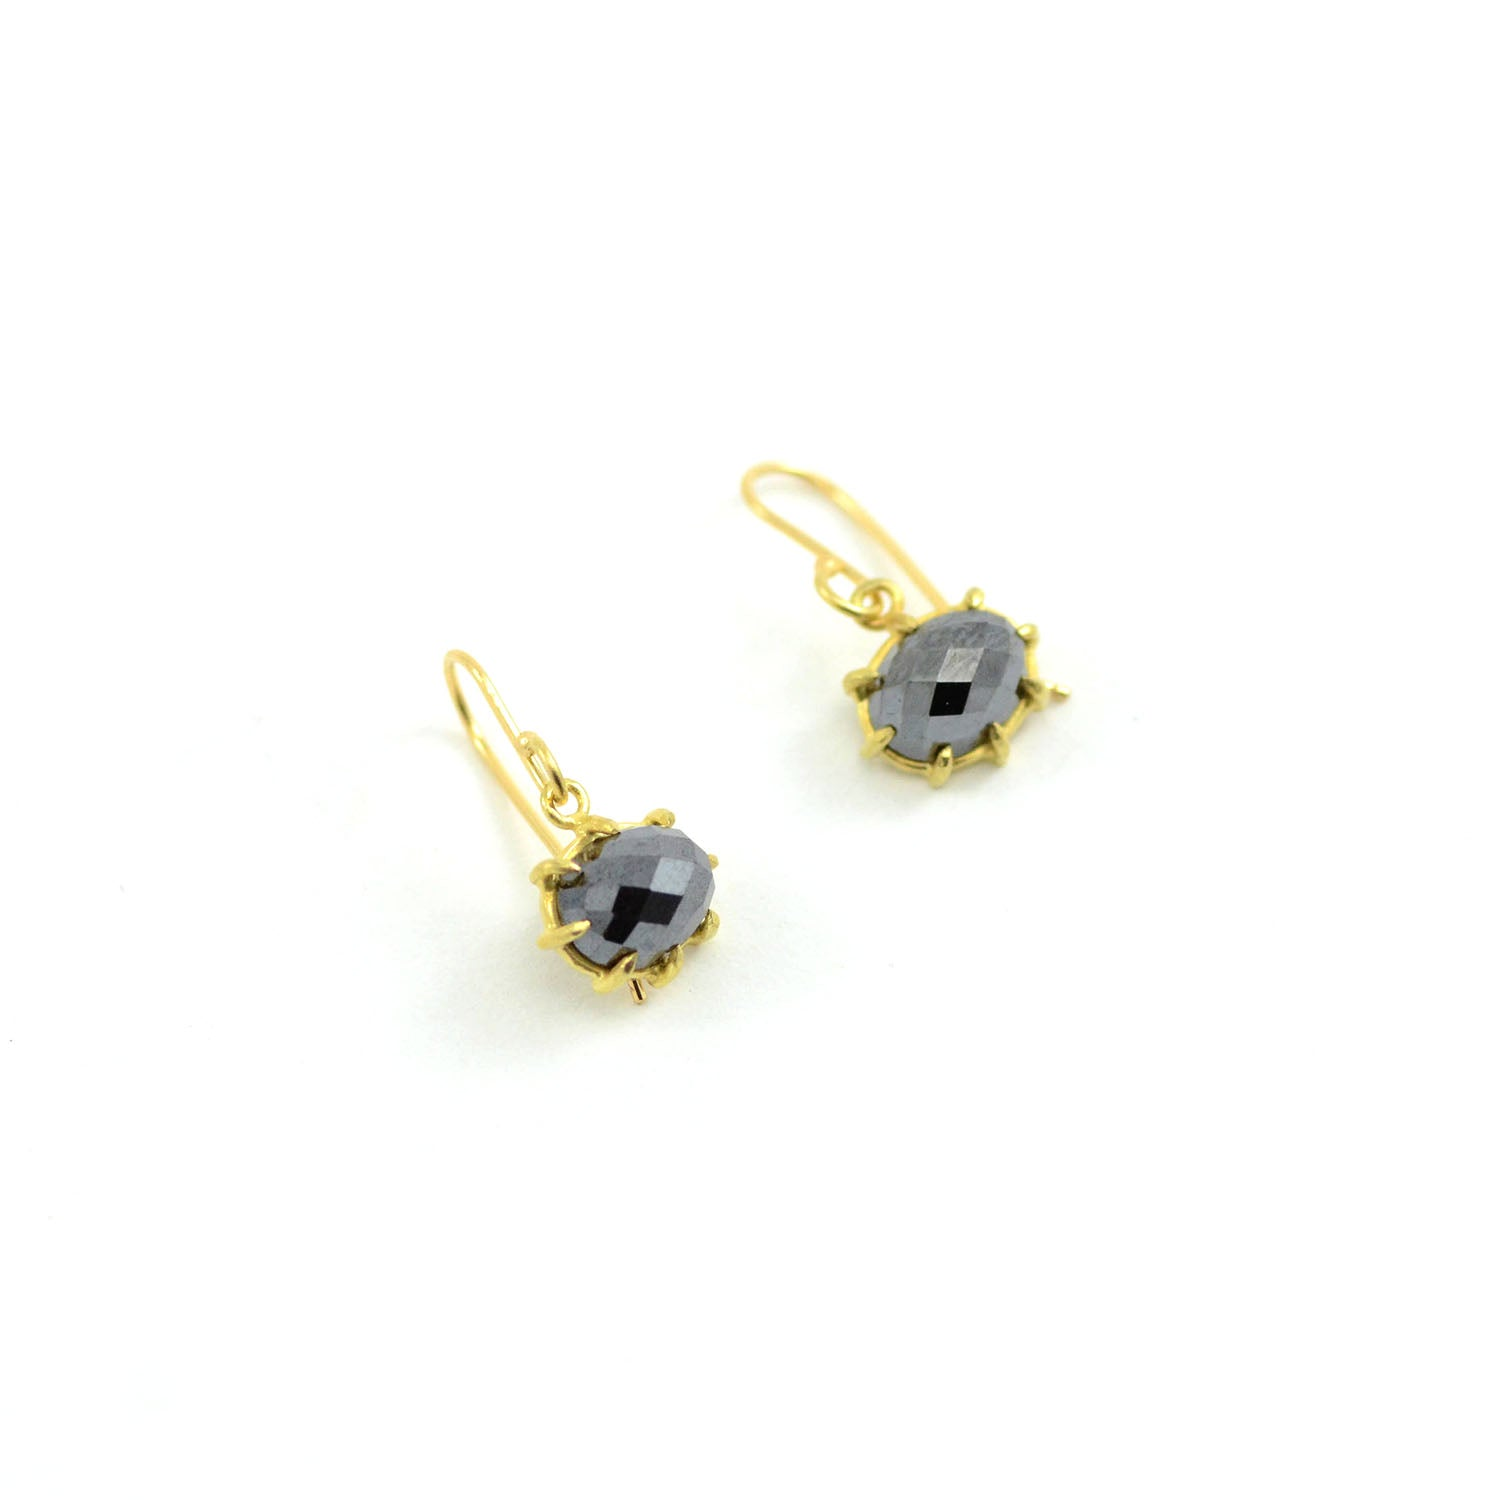 Rosanne Pugliese earrings Hematite Small Faceted Oval 18 Karat Yellow Gold Prong Set with  ear wires